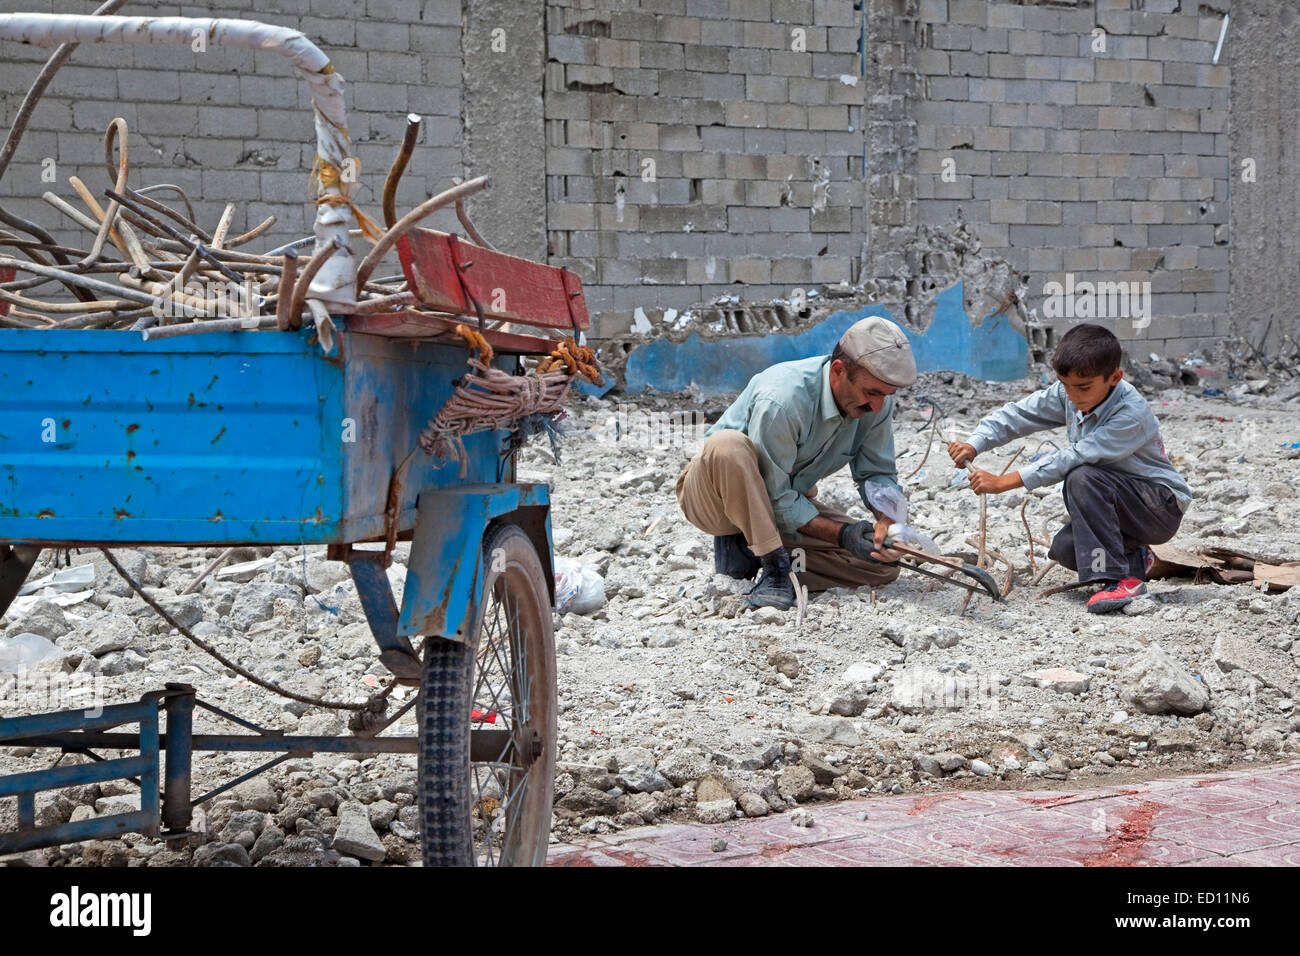 Son helping father recuperating iron with metal saw from debris of collapsed building after earthquake in Van, Eastern - Stock Image